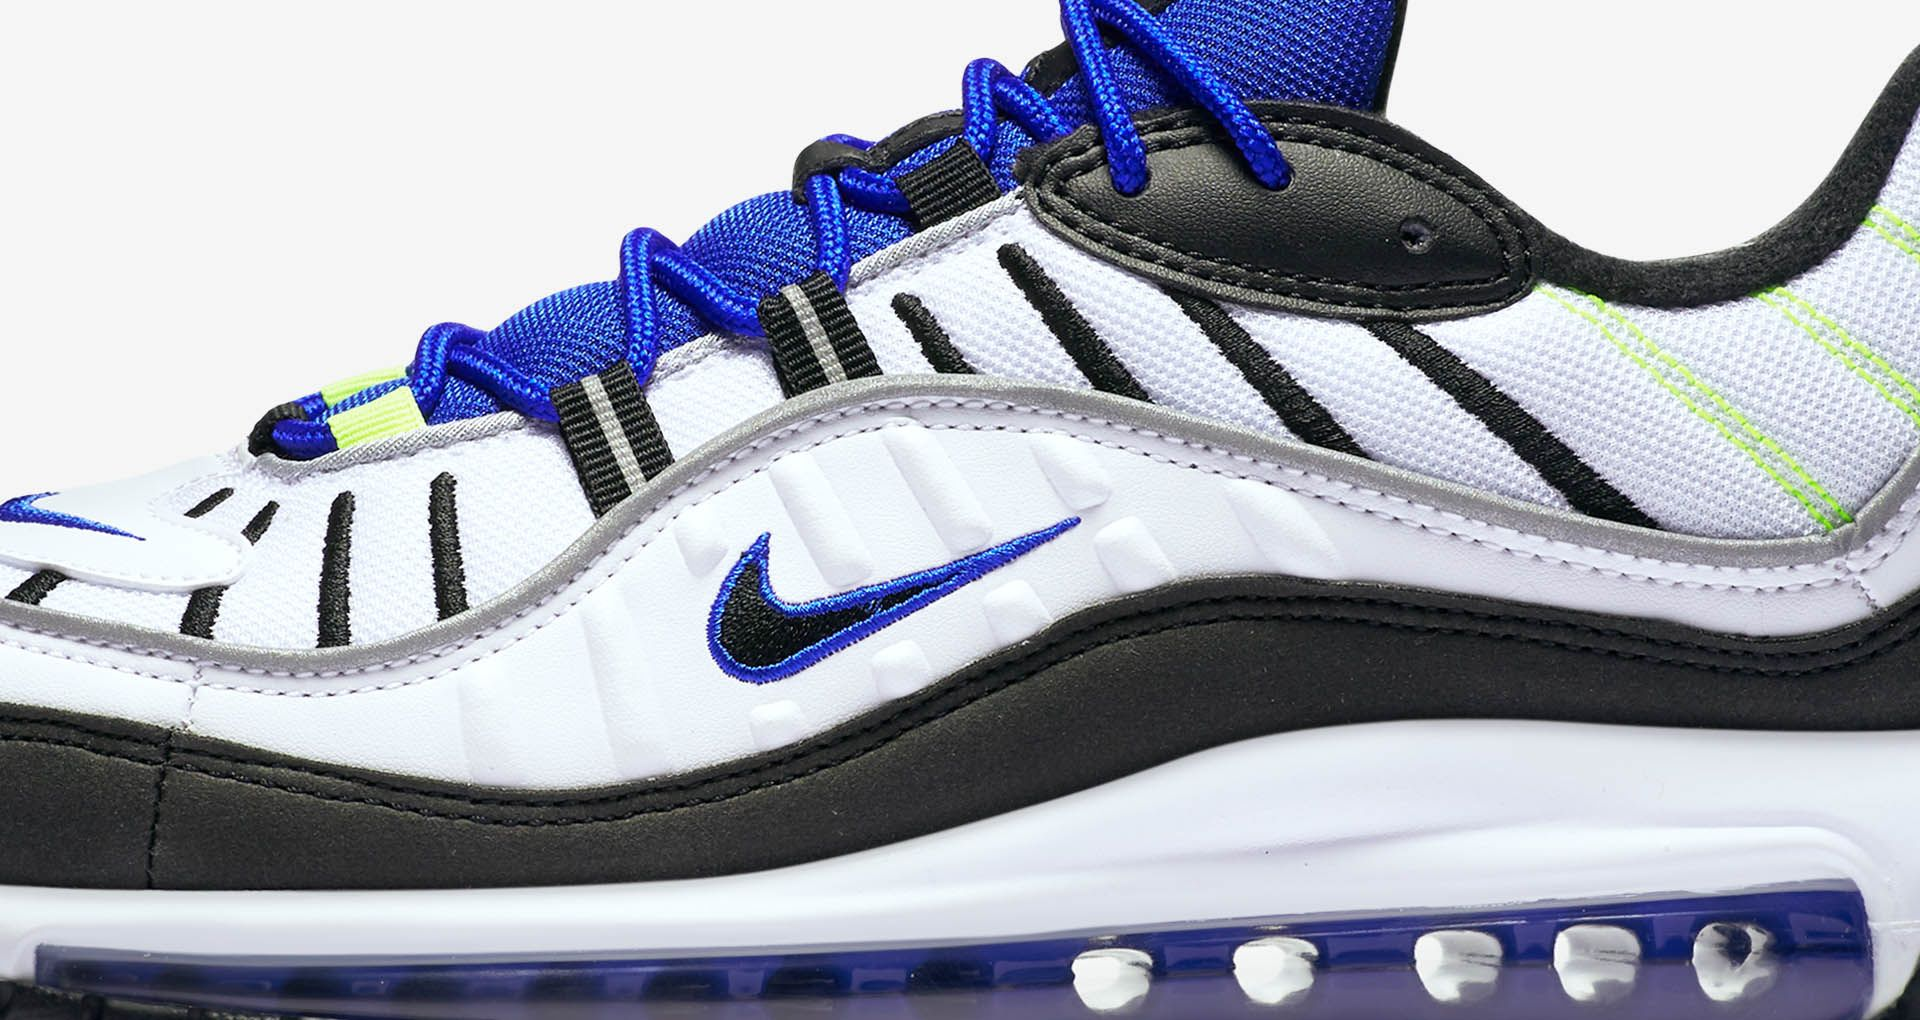 separation shoes 53342 65505 Nike Air Max 98 'White & Black & Racer Blue' Release ...